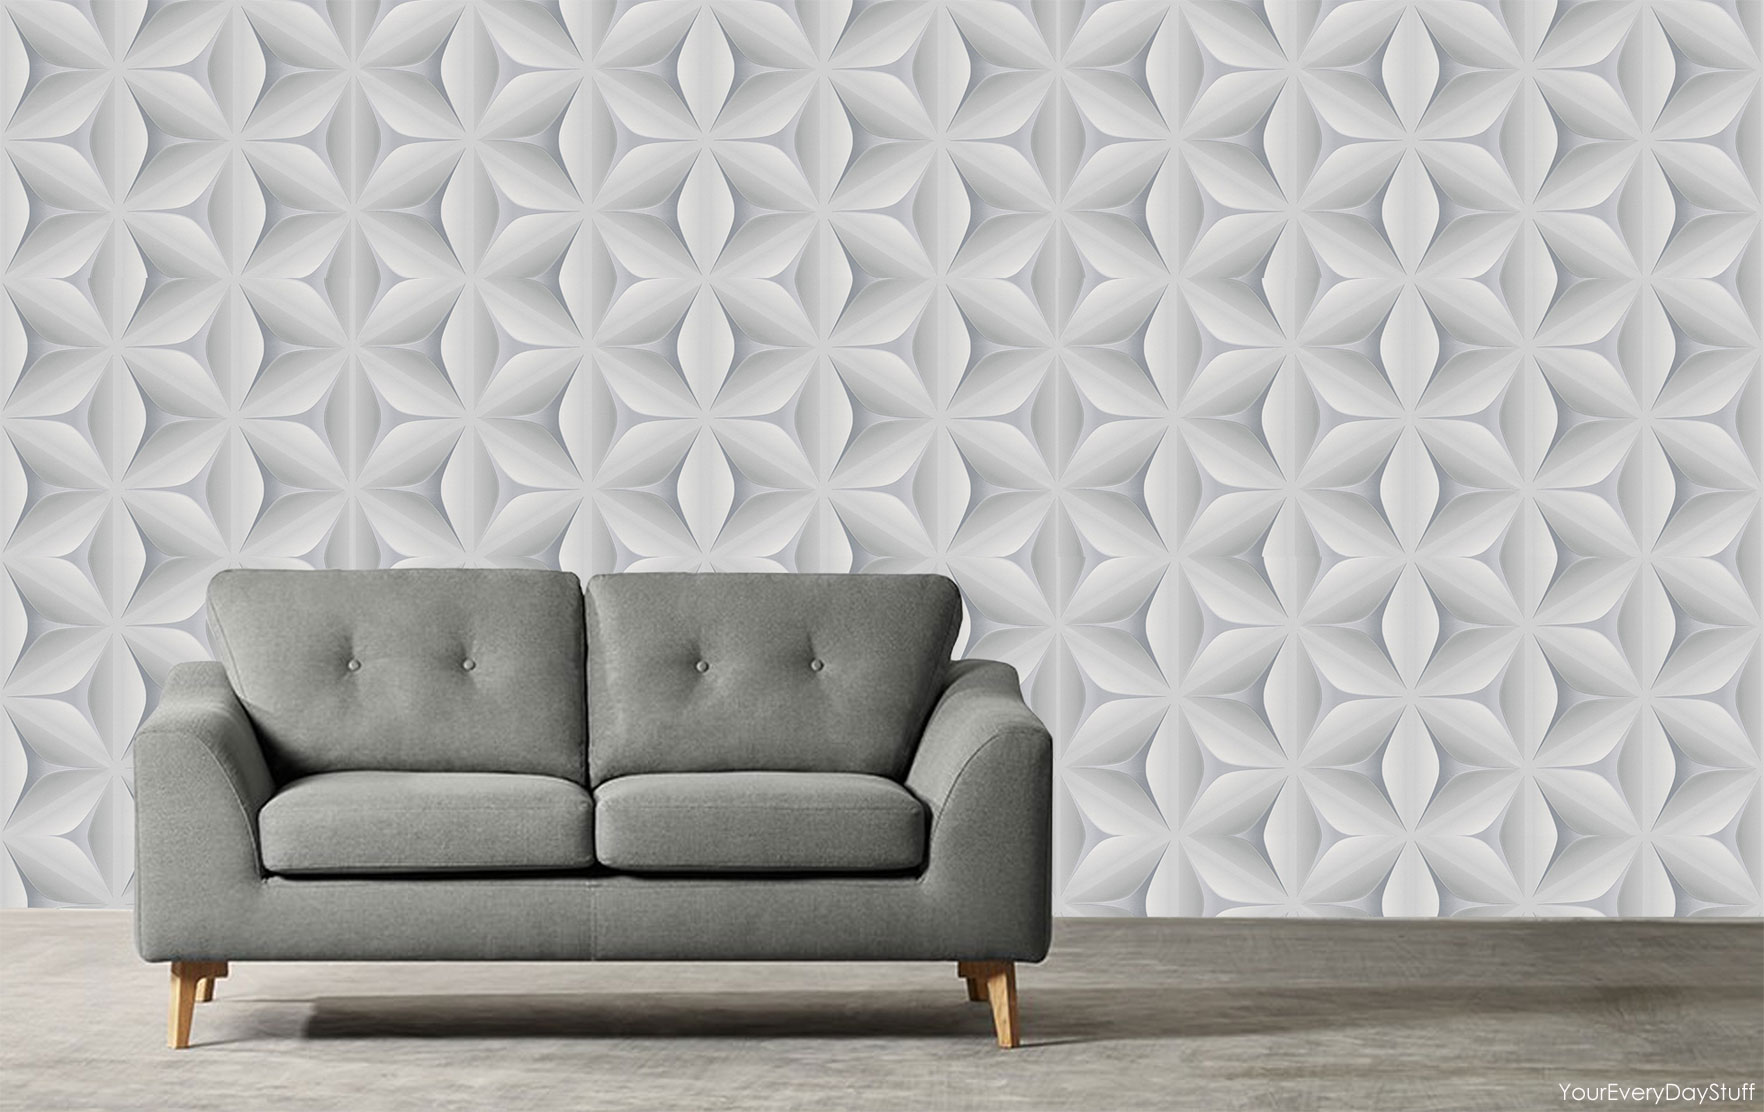 funky living room wallpaper paint colors for open and dining retro vintage star leaf 3d abstract geometric grey white